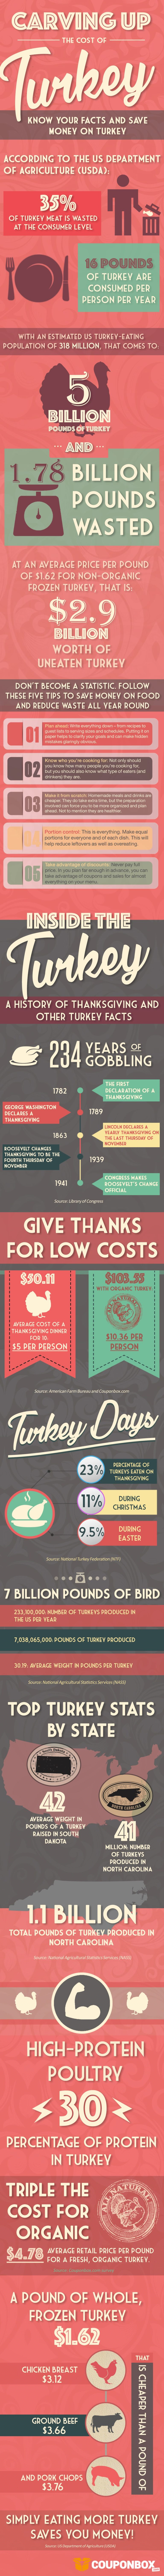 Carving Up the Cost of Turkey